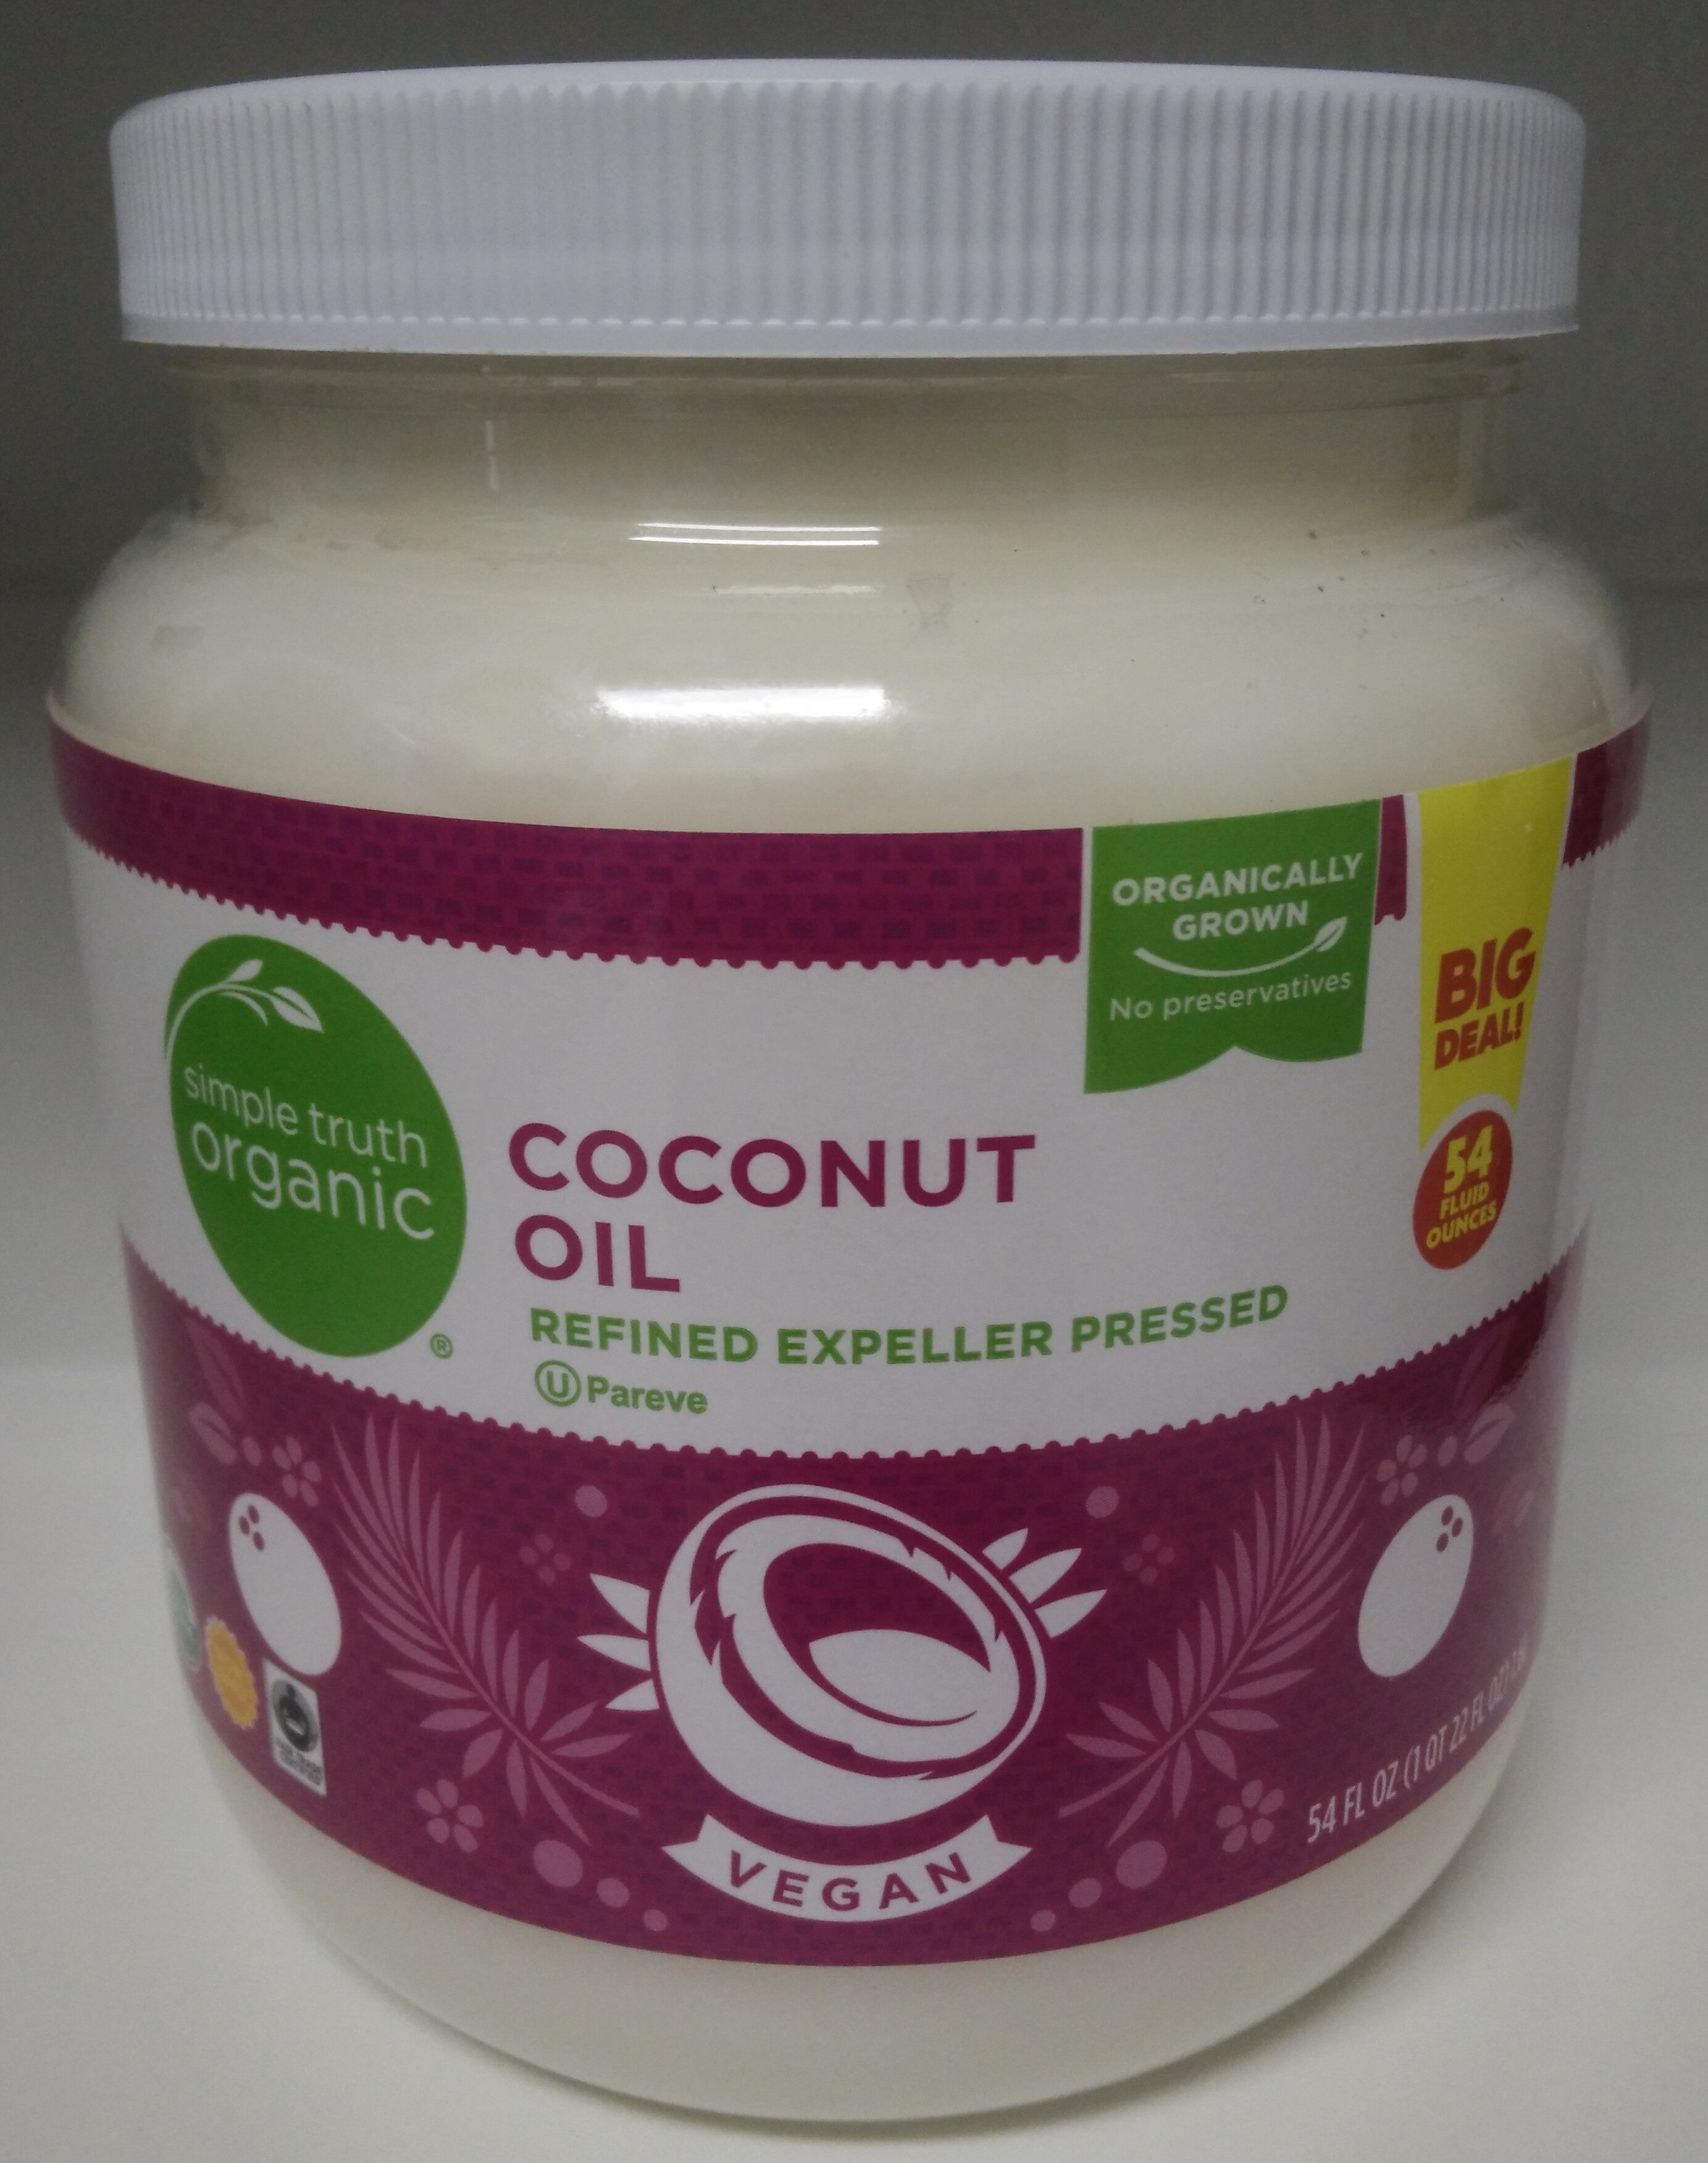 Coconut Oil - Product